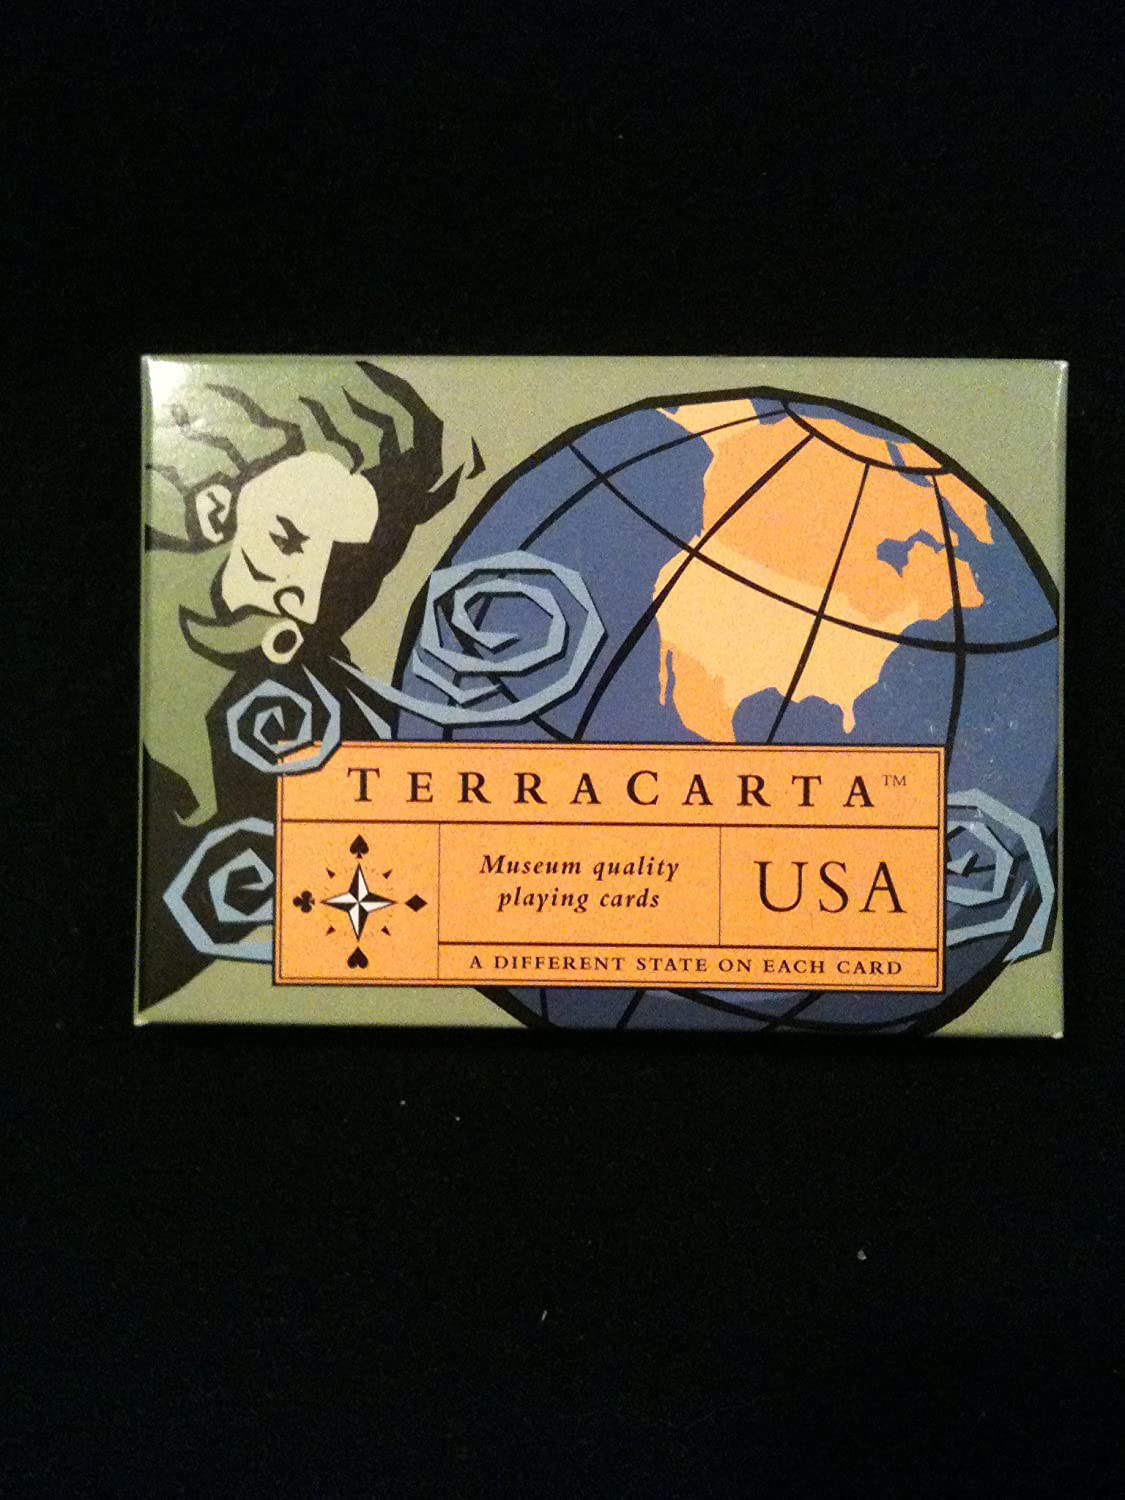 Terracarta Museum Quality Playing Cards